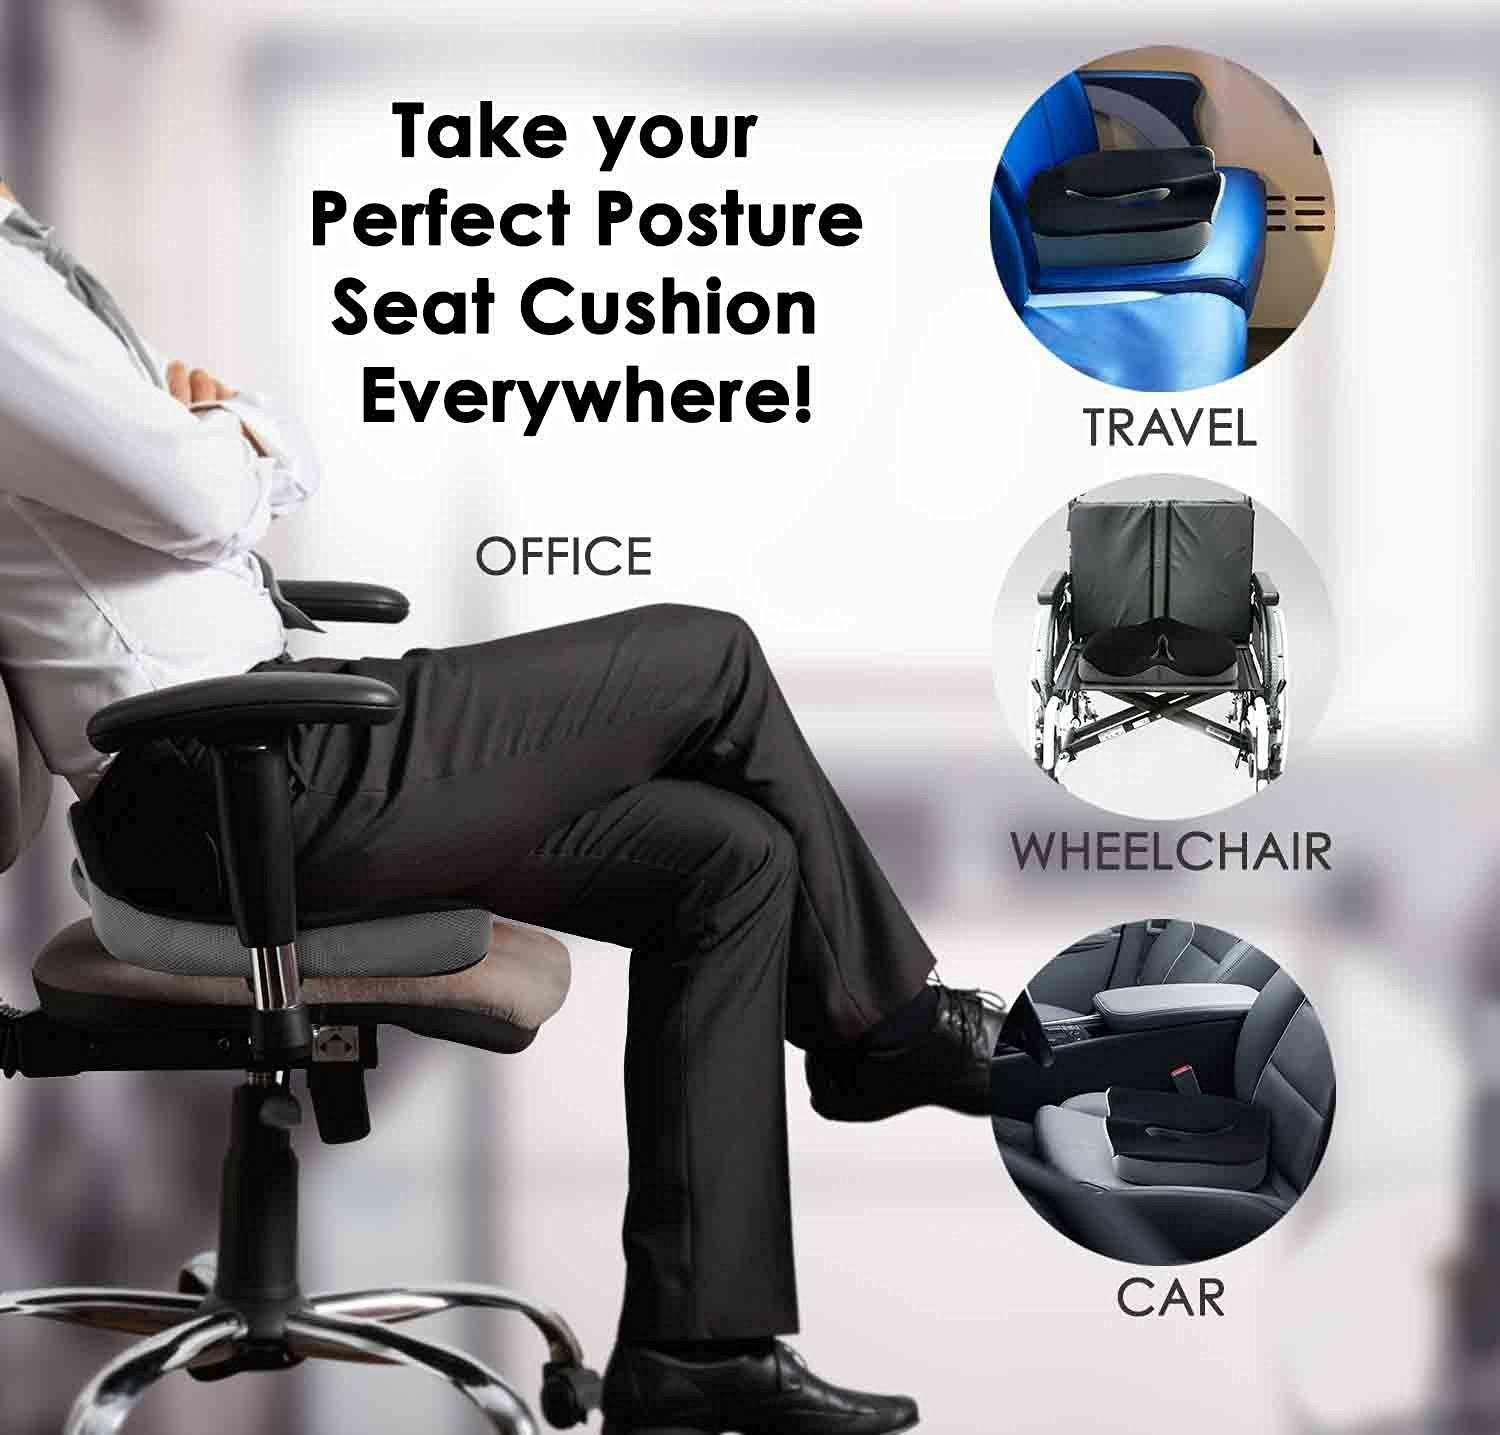 Wheel Chair Cushion Buy Seat Cushion Car Seat Cushion Chair Cushion Sciatica Cushion